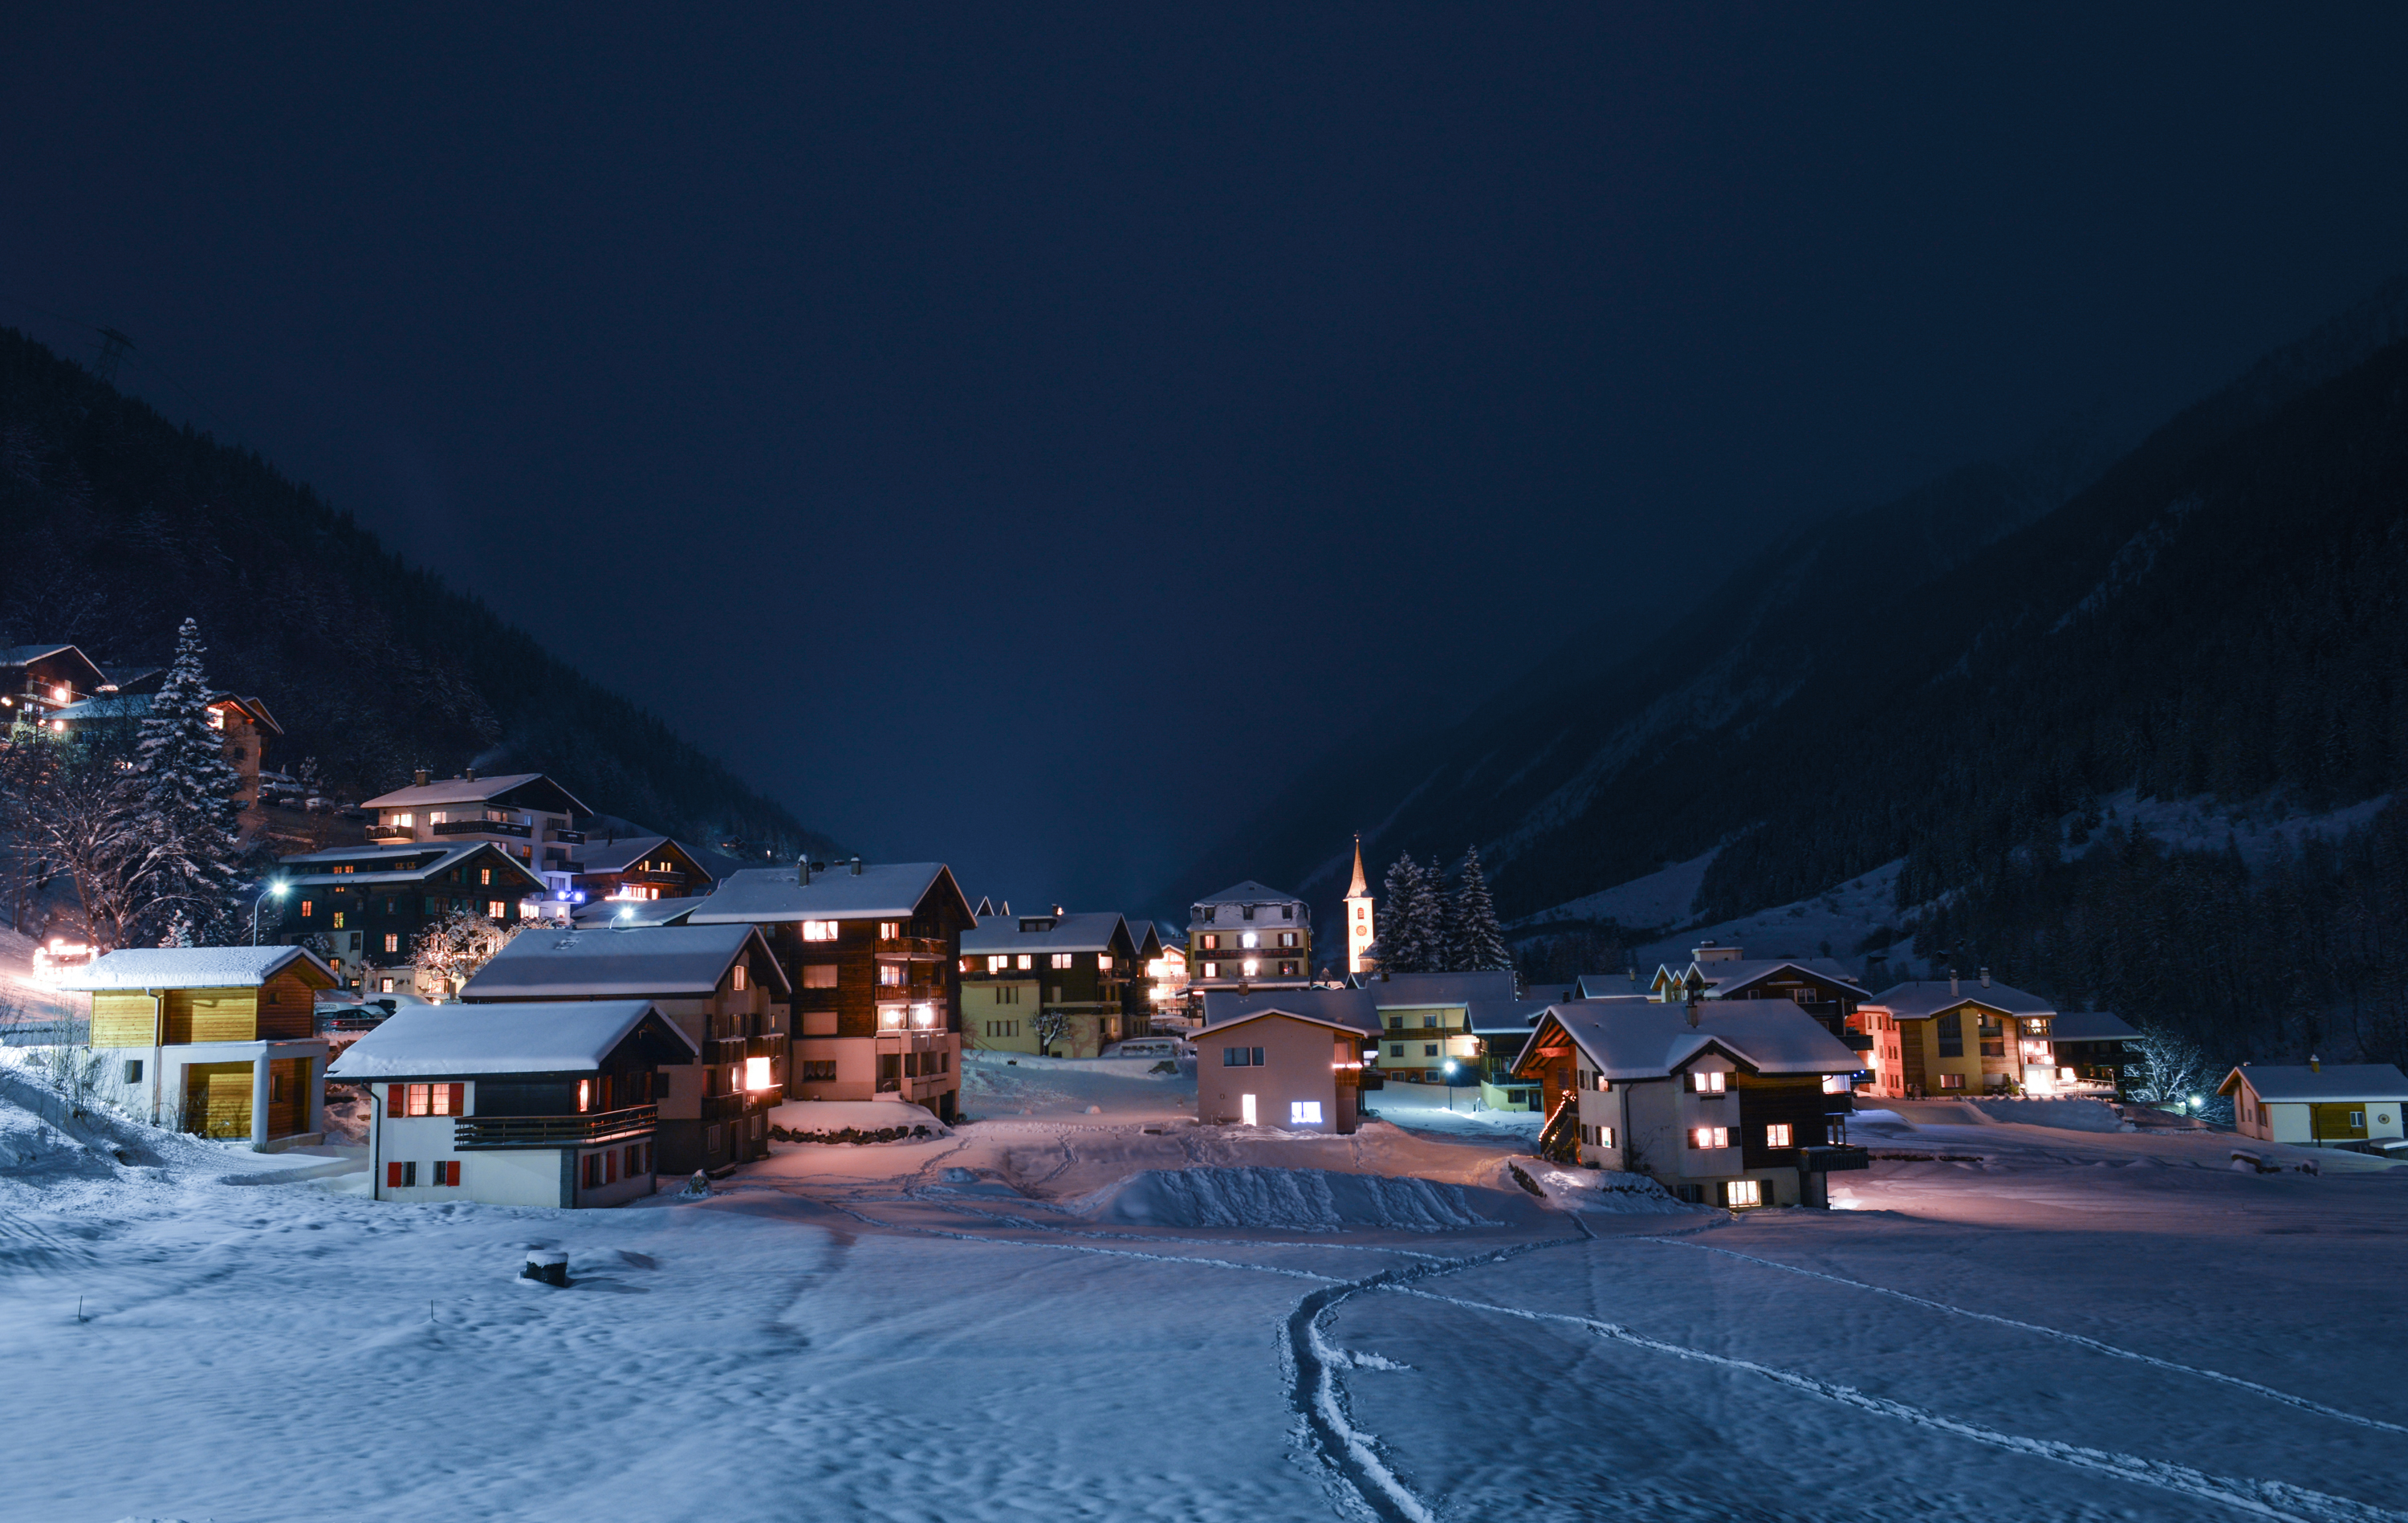 Lötschental village winter evening